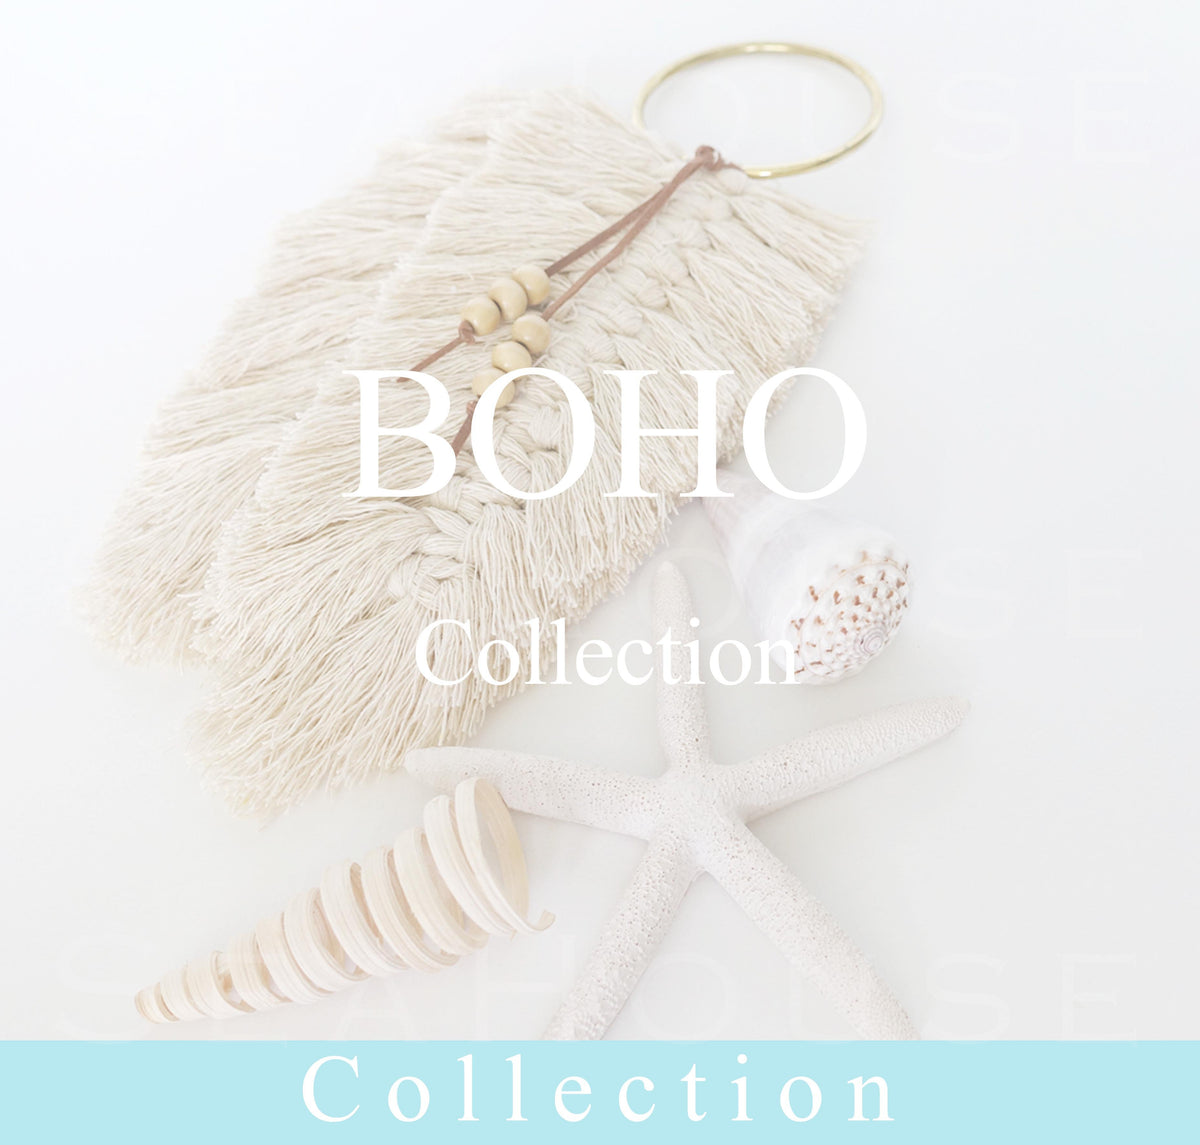 BOHO Collection Image